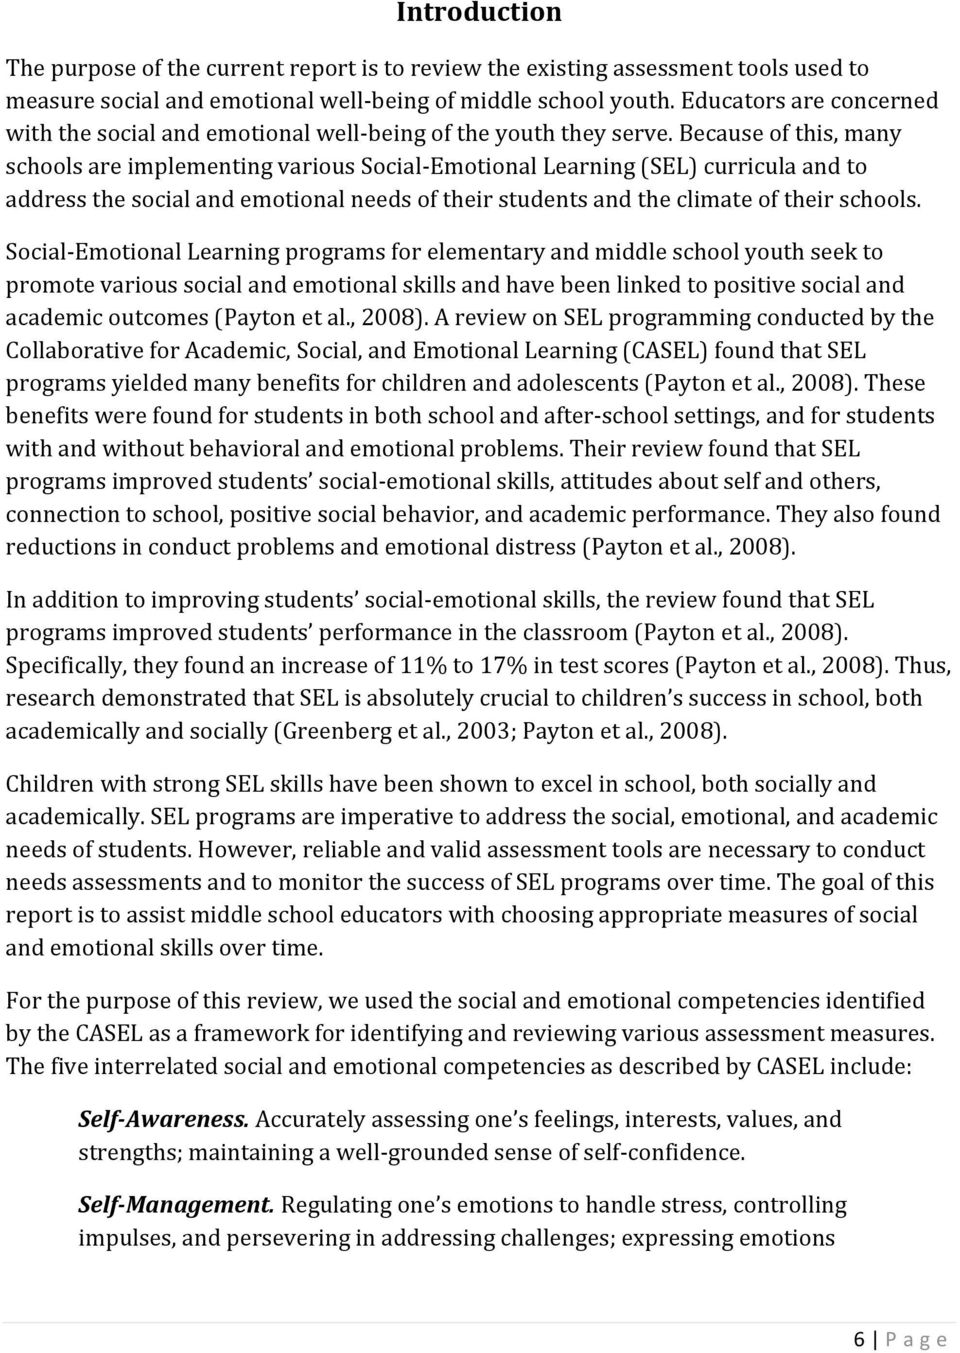 Because of this, many schools are implementing various Social-Emotional Learning (SEL) curricula and to address the social and emotional needs of their students and the climate of their schools.